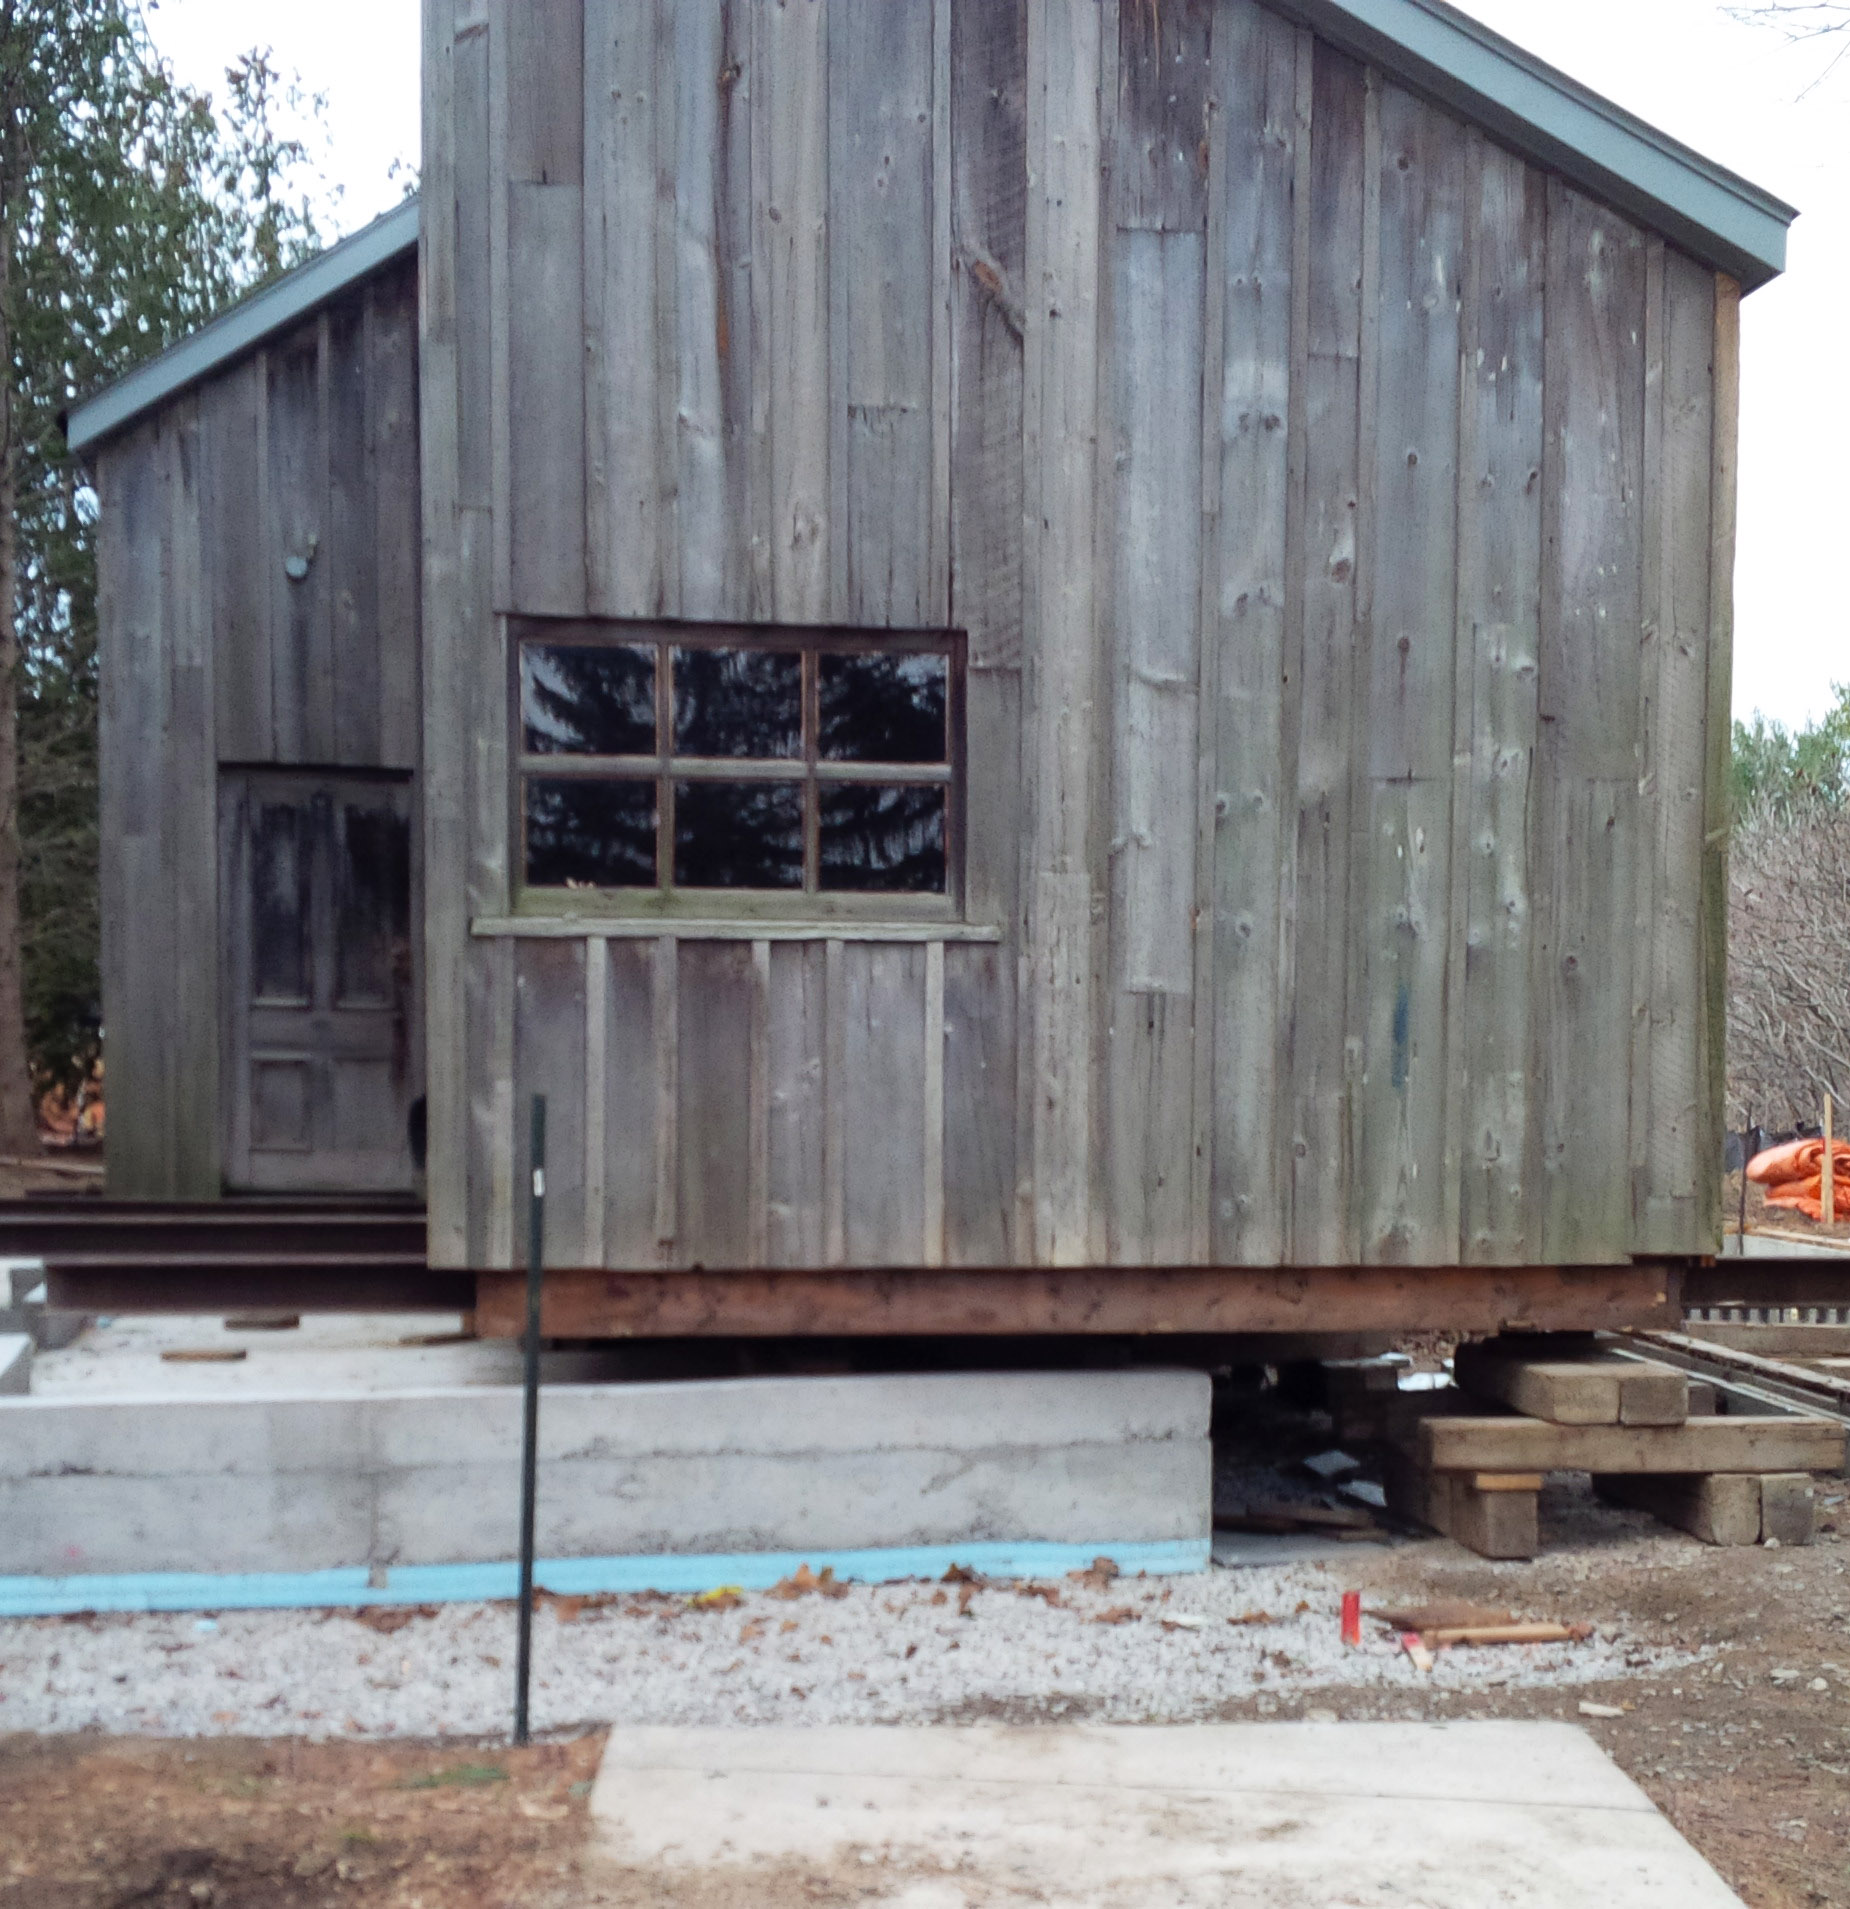 Tom Thompson Shack, McMichael Gallery​ - before